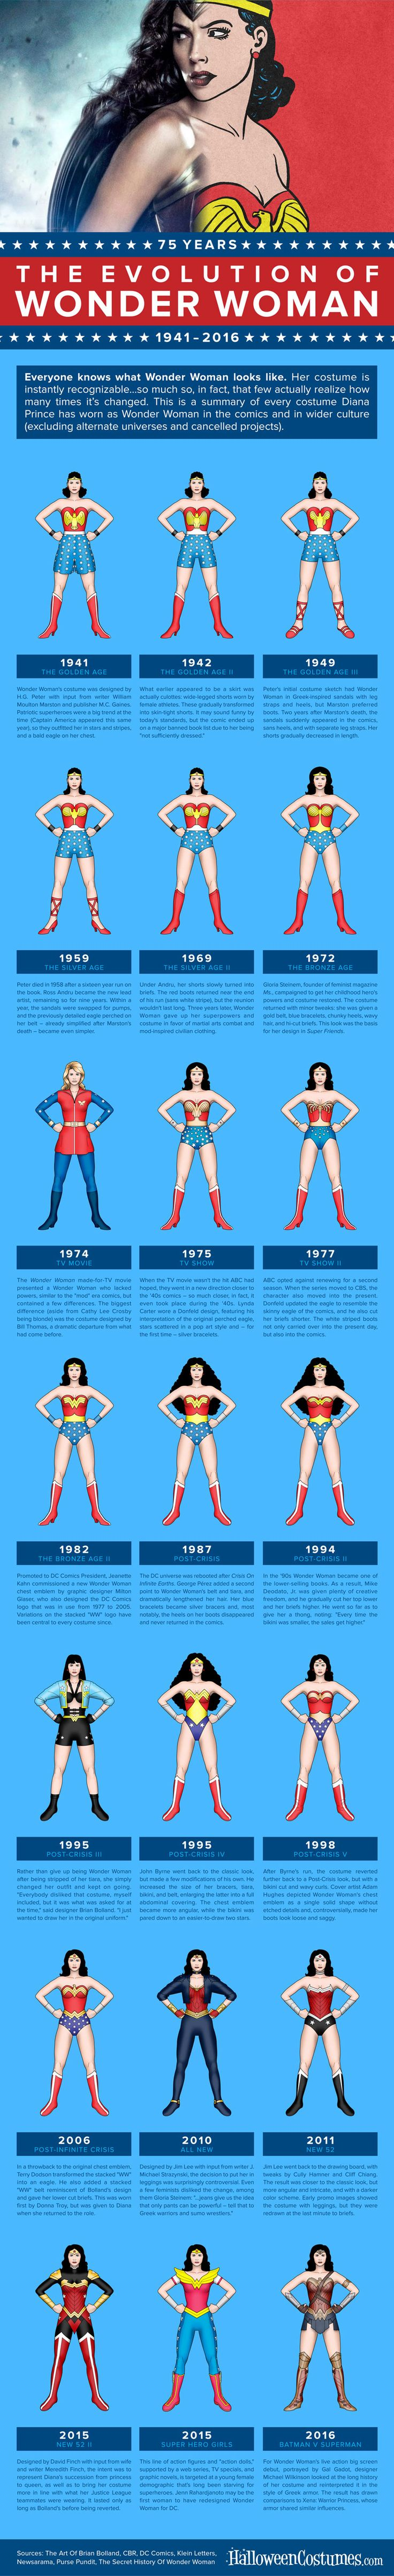 Evolution of Wonder Woman Costume - Movie Infographic. Topic: dccomics, superman